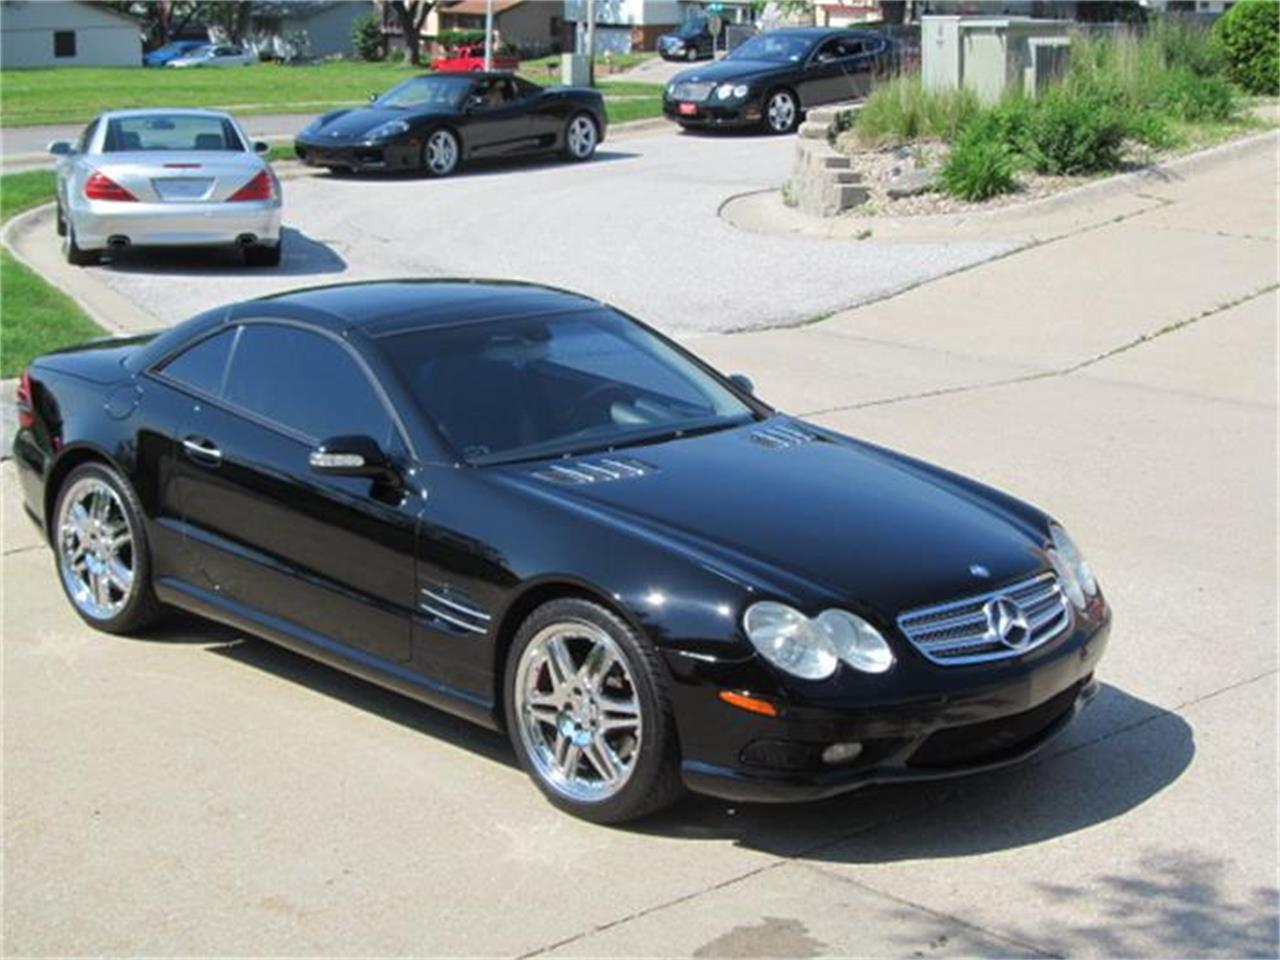 Large Picture of '03 SL500 located in Omaha Nebraska - $19,900.00 - I54G